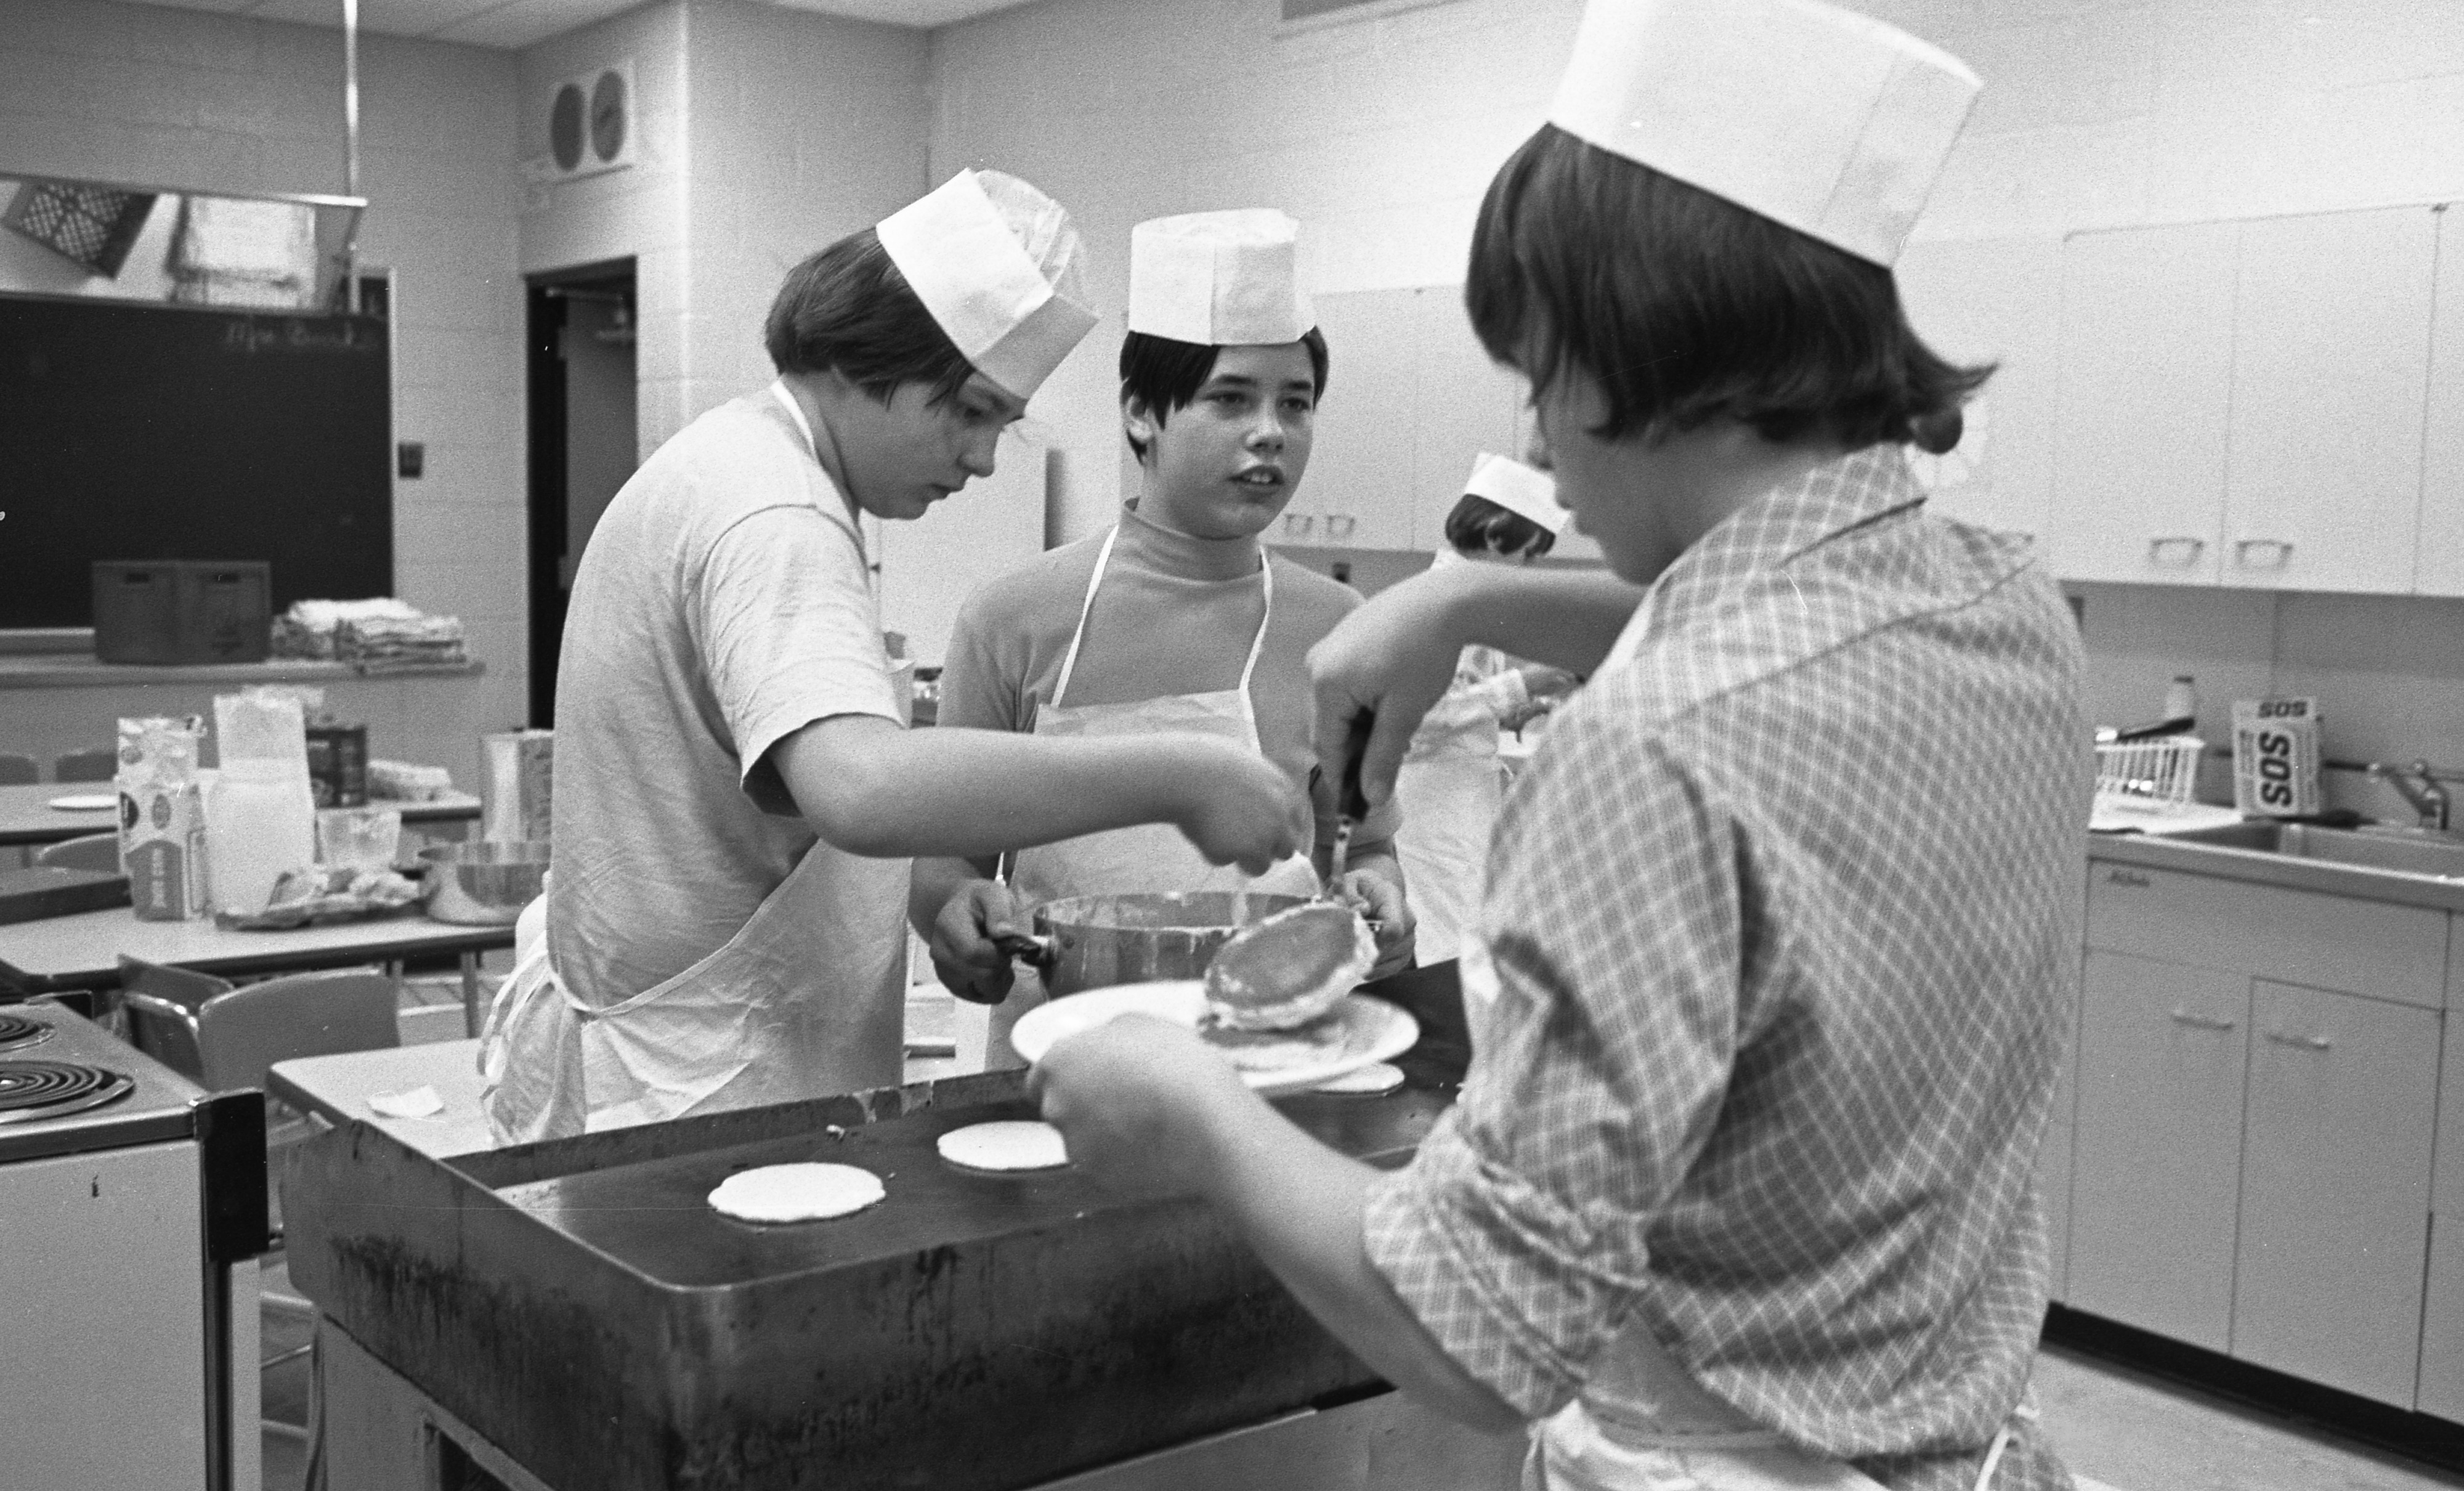 Mark Smalley & Fellow Students Cook Pancakes For The Project Scarlett 'Road Runner Inn' Restaurant, February 1973 image